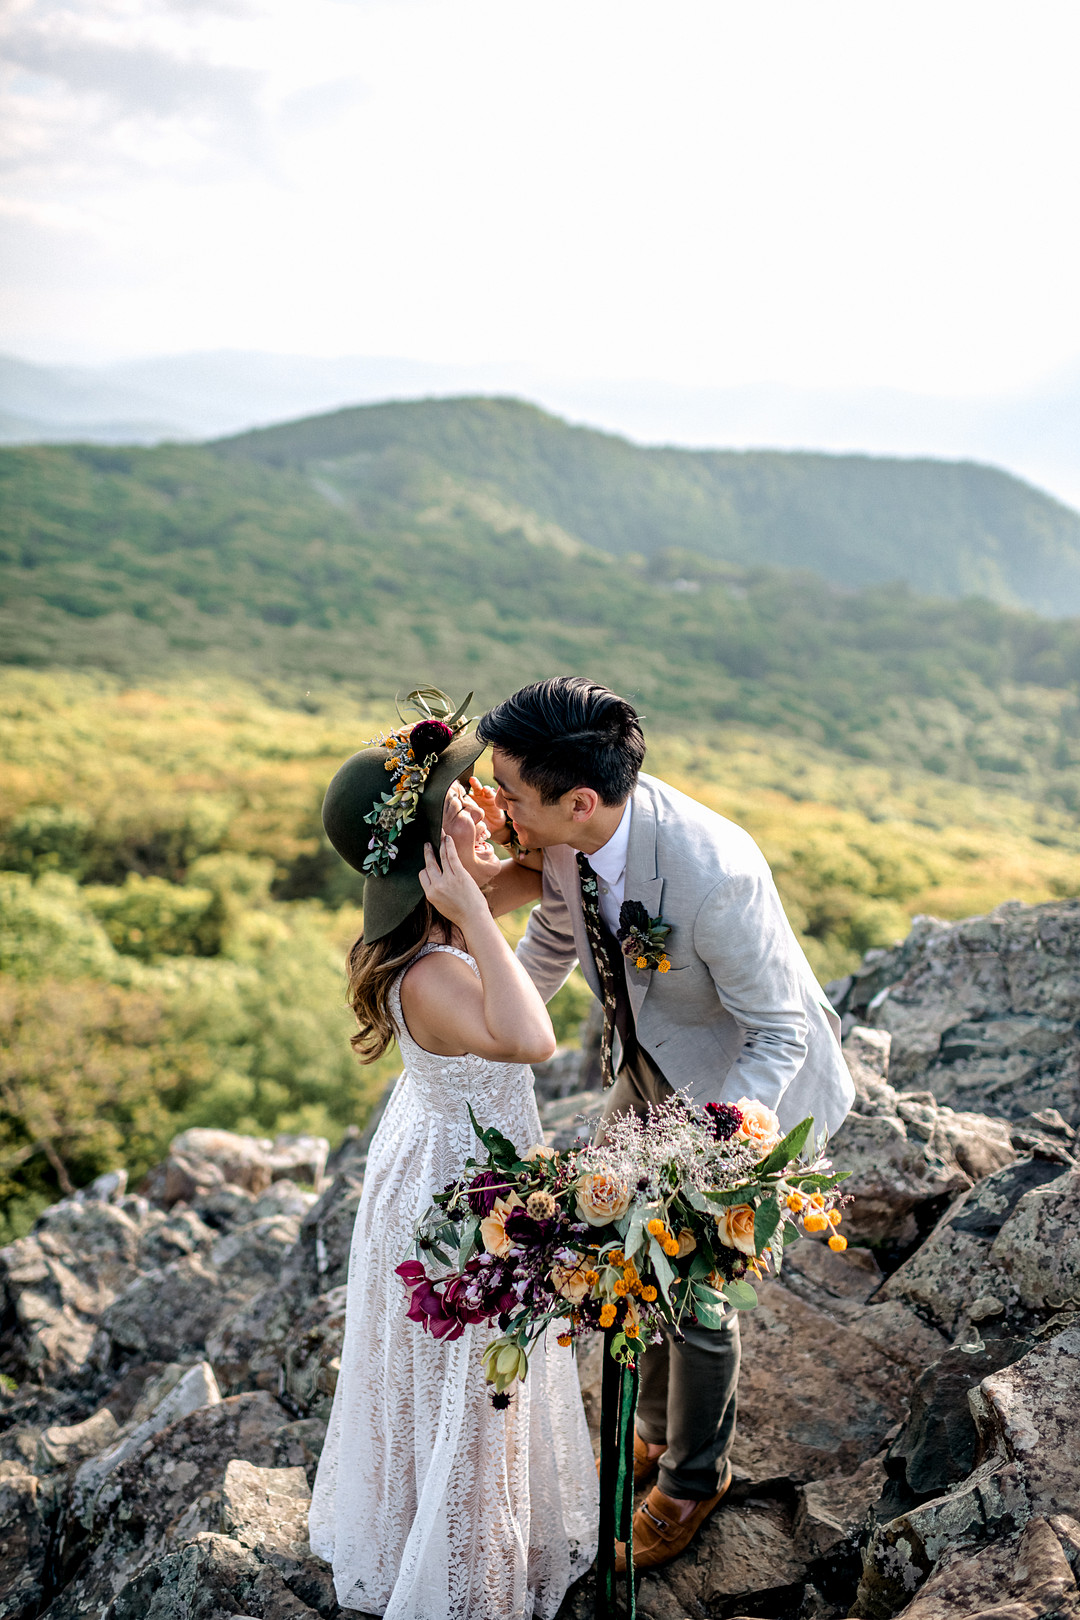 Boho Mountain Elopement in Shenandoah National Park_1001 Angles Photography_Shenandoah National Park Adventure Elopement-115_low